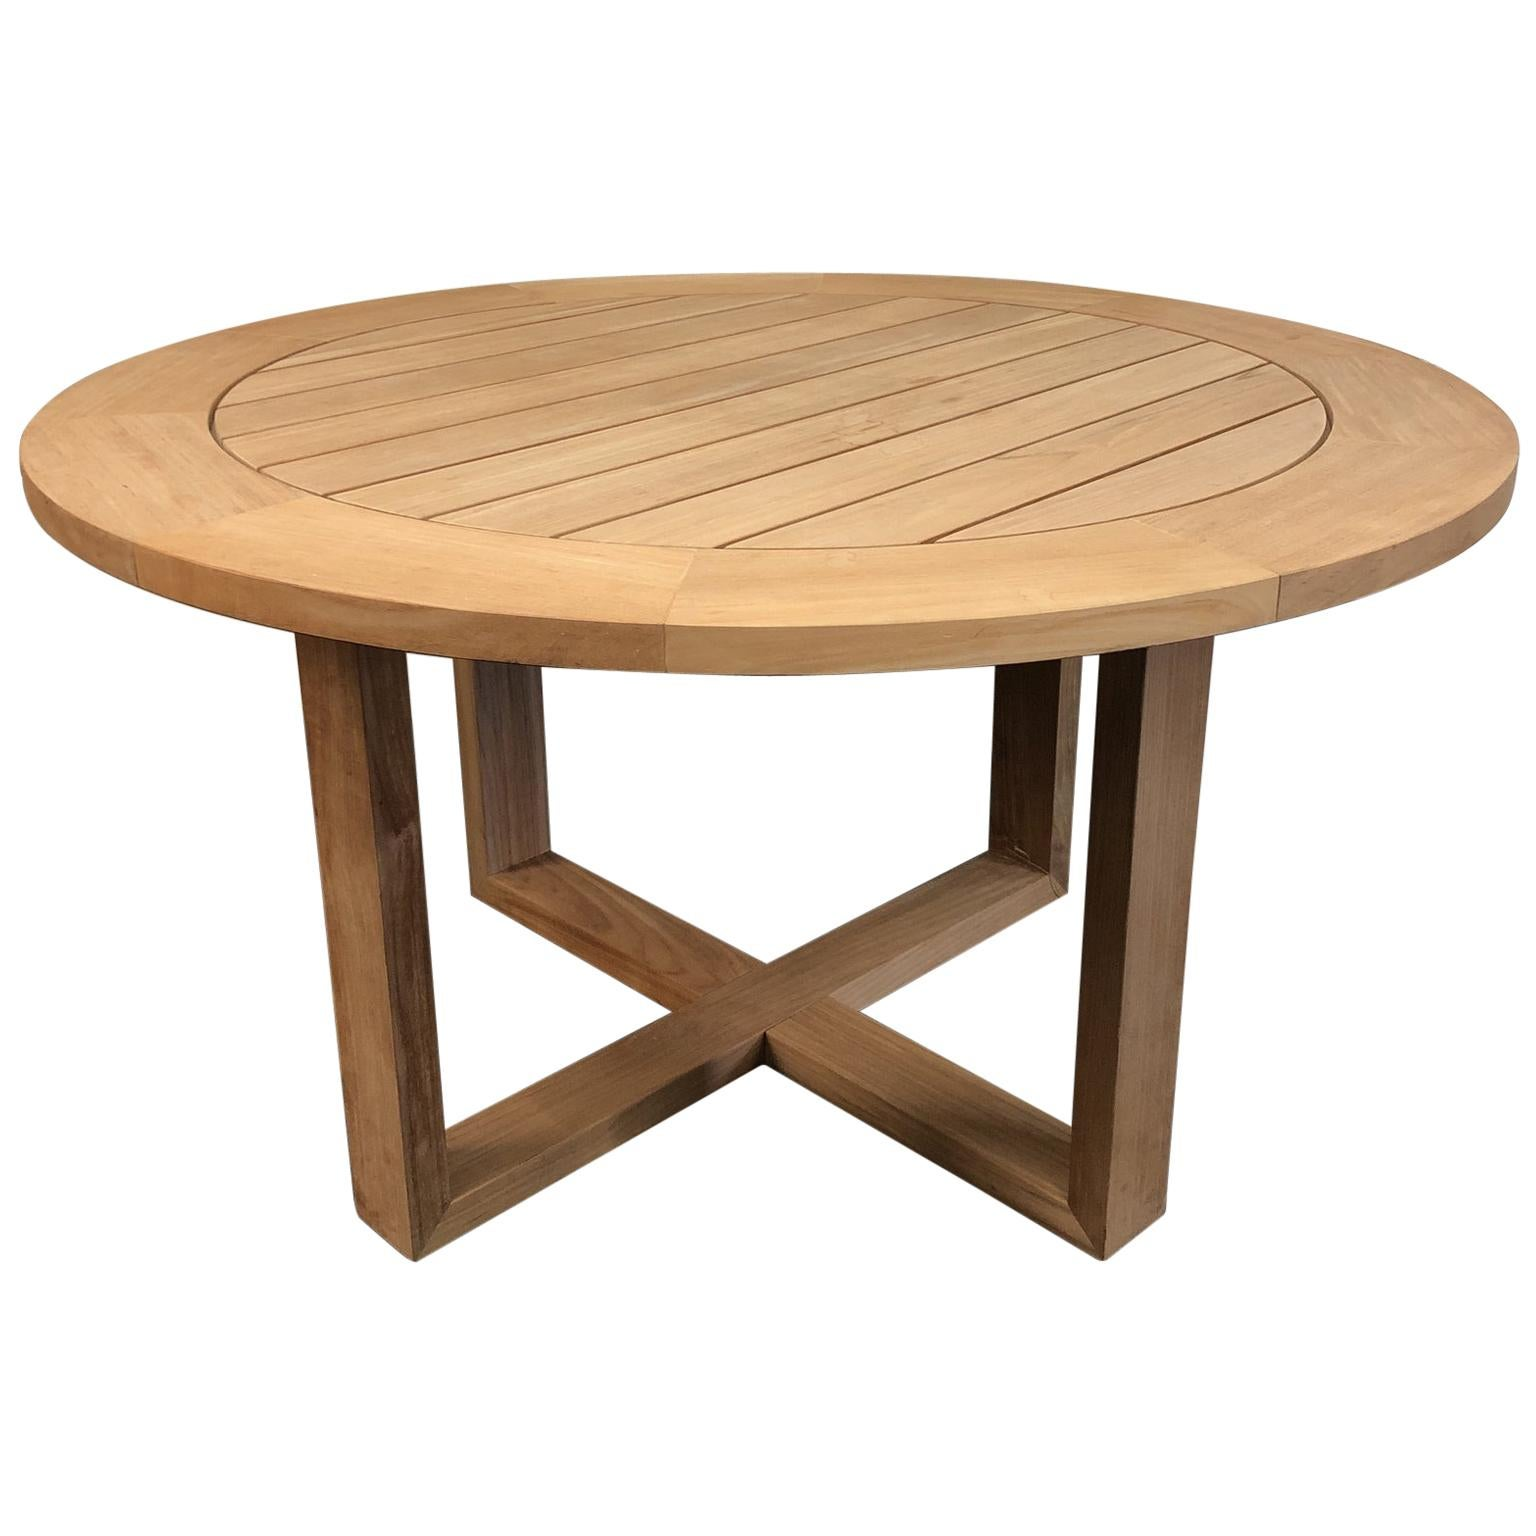 New Siena Round Teak Table By Manutti Belgian Outdoor Furniture